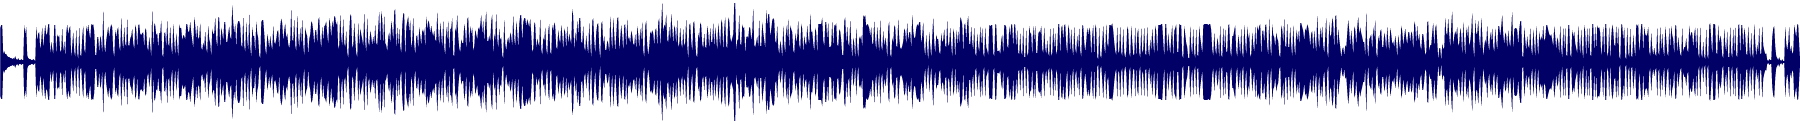 waveform of track #44621